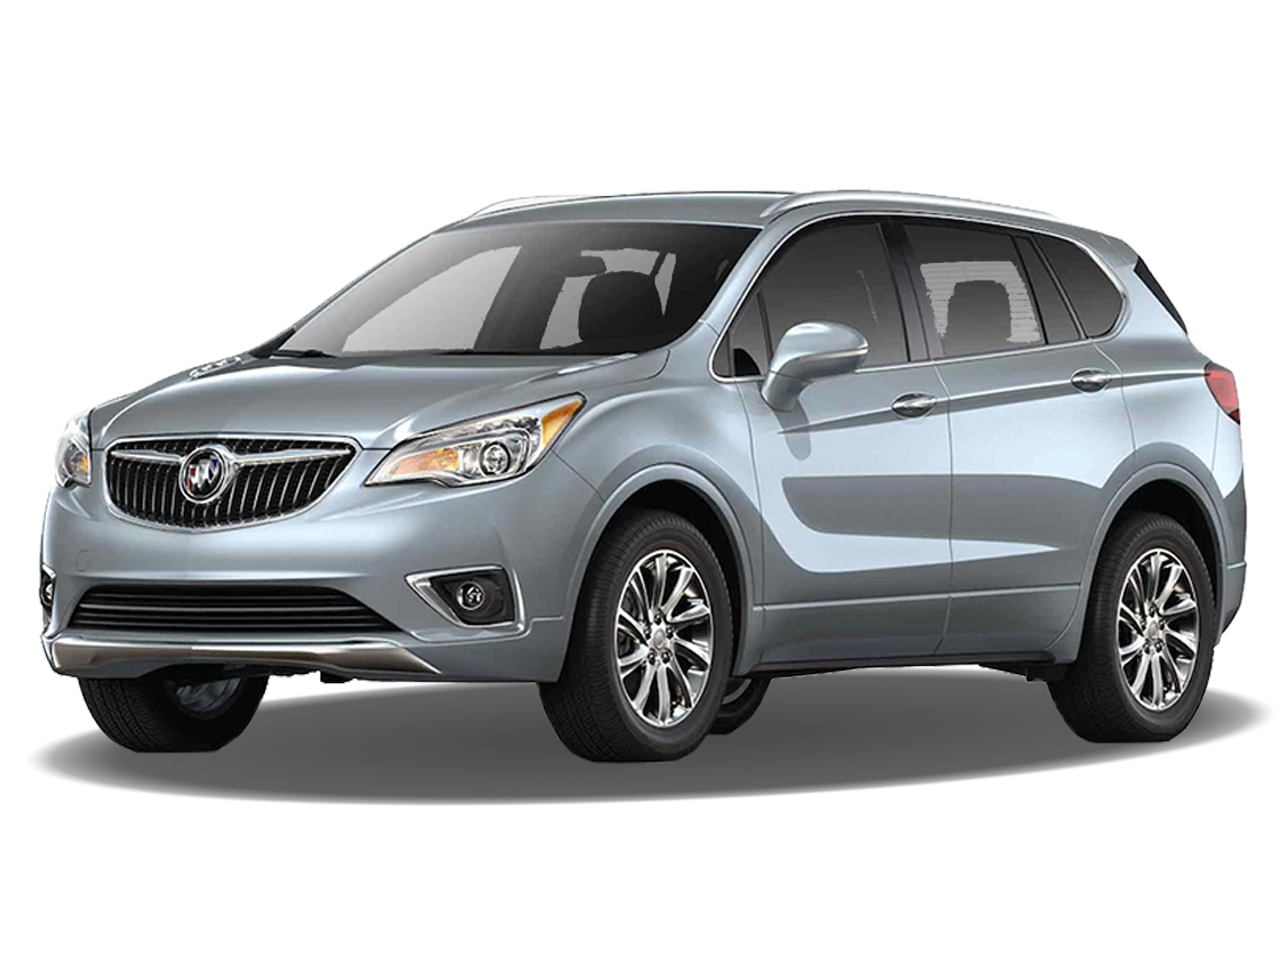 85 The 2019 Buick Envision Concept